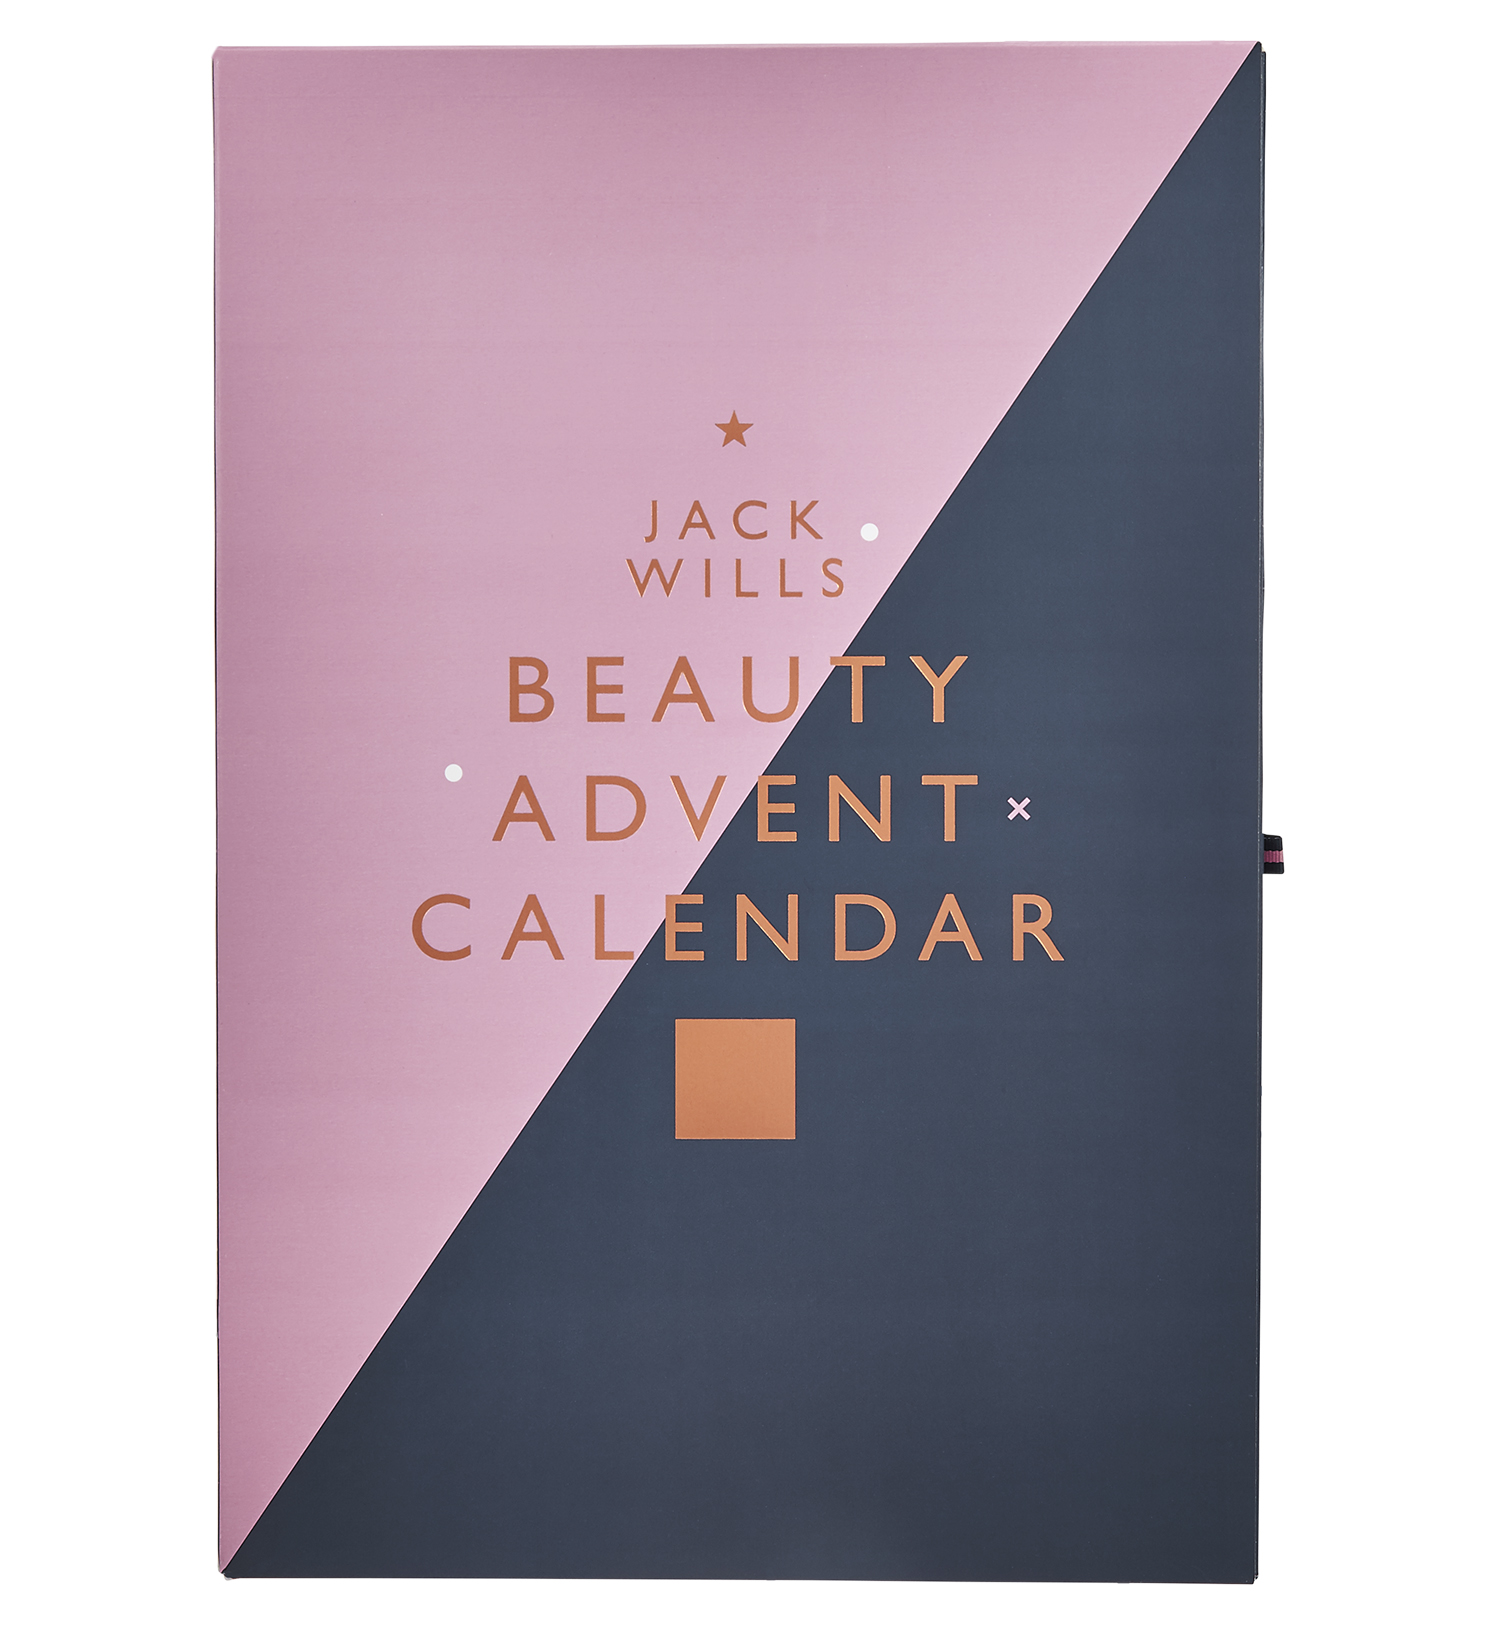 Photo of Jack Wills Advent Calendar